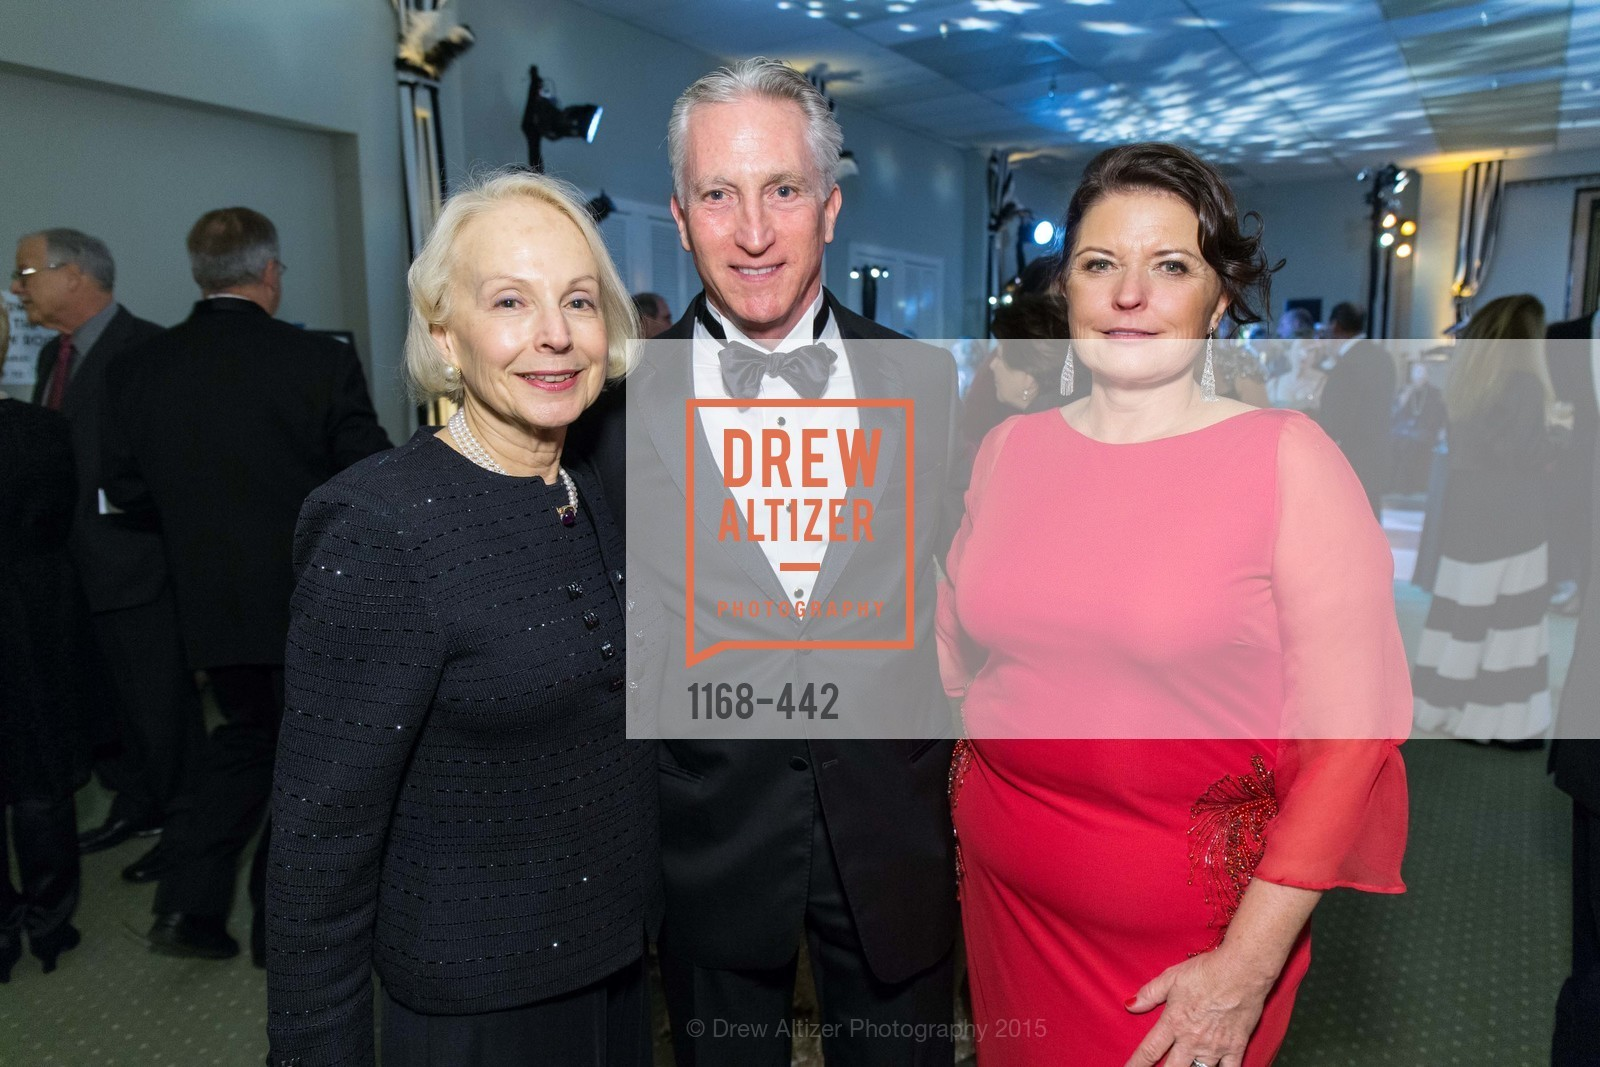 Sharon Litsky, Robert Eldred, Elizabeth Folger, Metropolitan Club Presents THE CENTENNIAL GALA, Metropolitan Club. 640 Sutter Street, November 5th, 2015,Drew Altizer, Drew Altizer Photography, full-service agency, private events, San Francisco photographer, photographer california